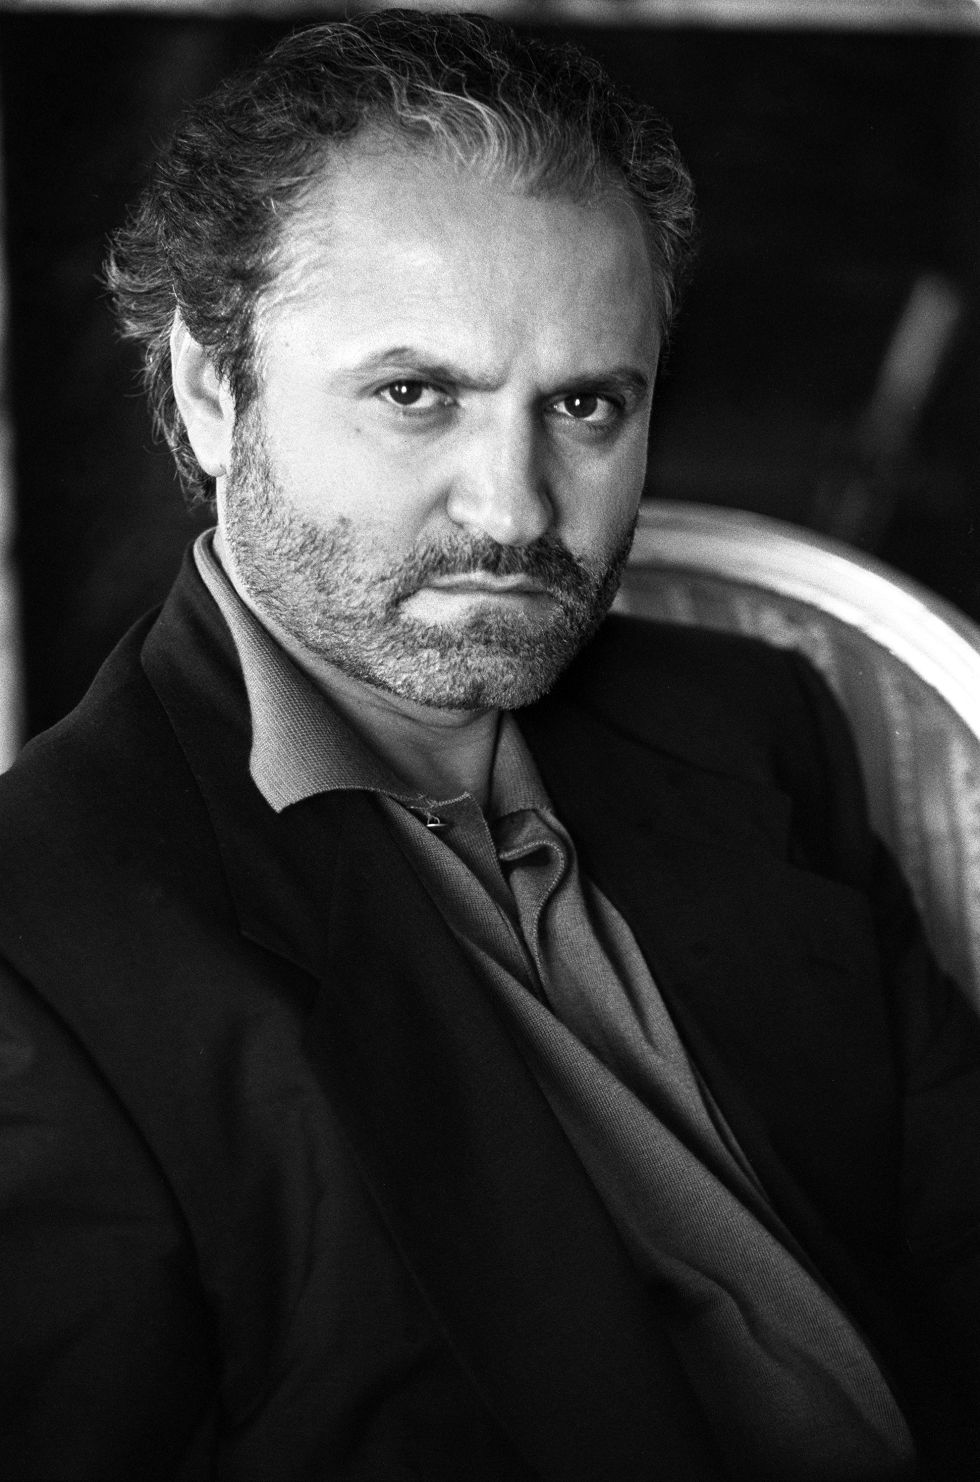 Gianni Versace 15 Things You Didnt Know About Him